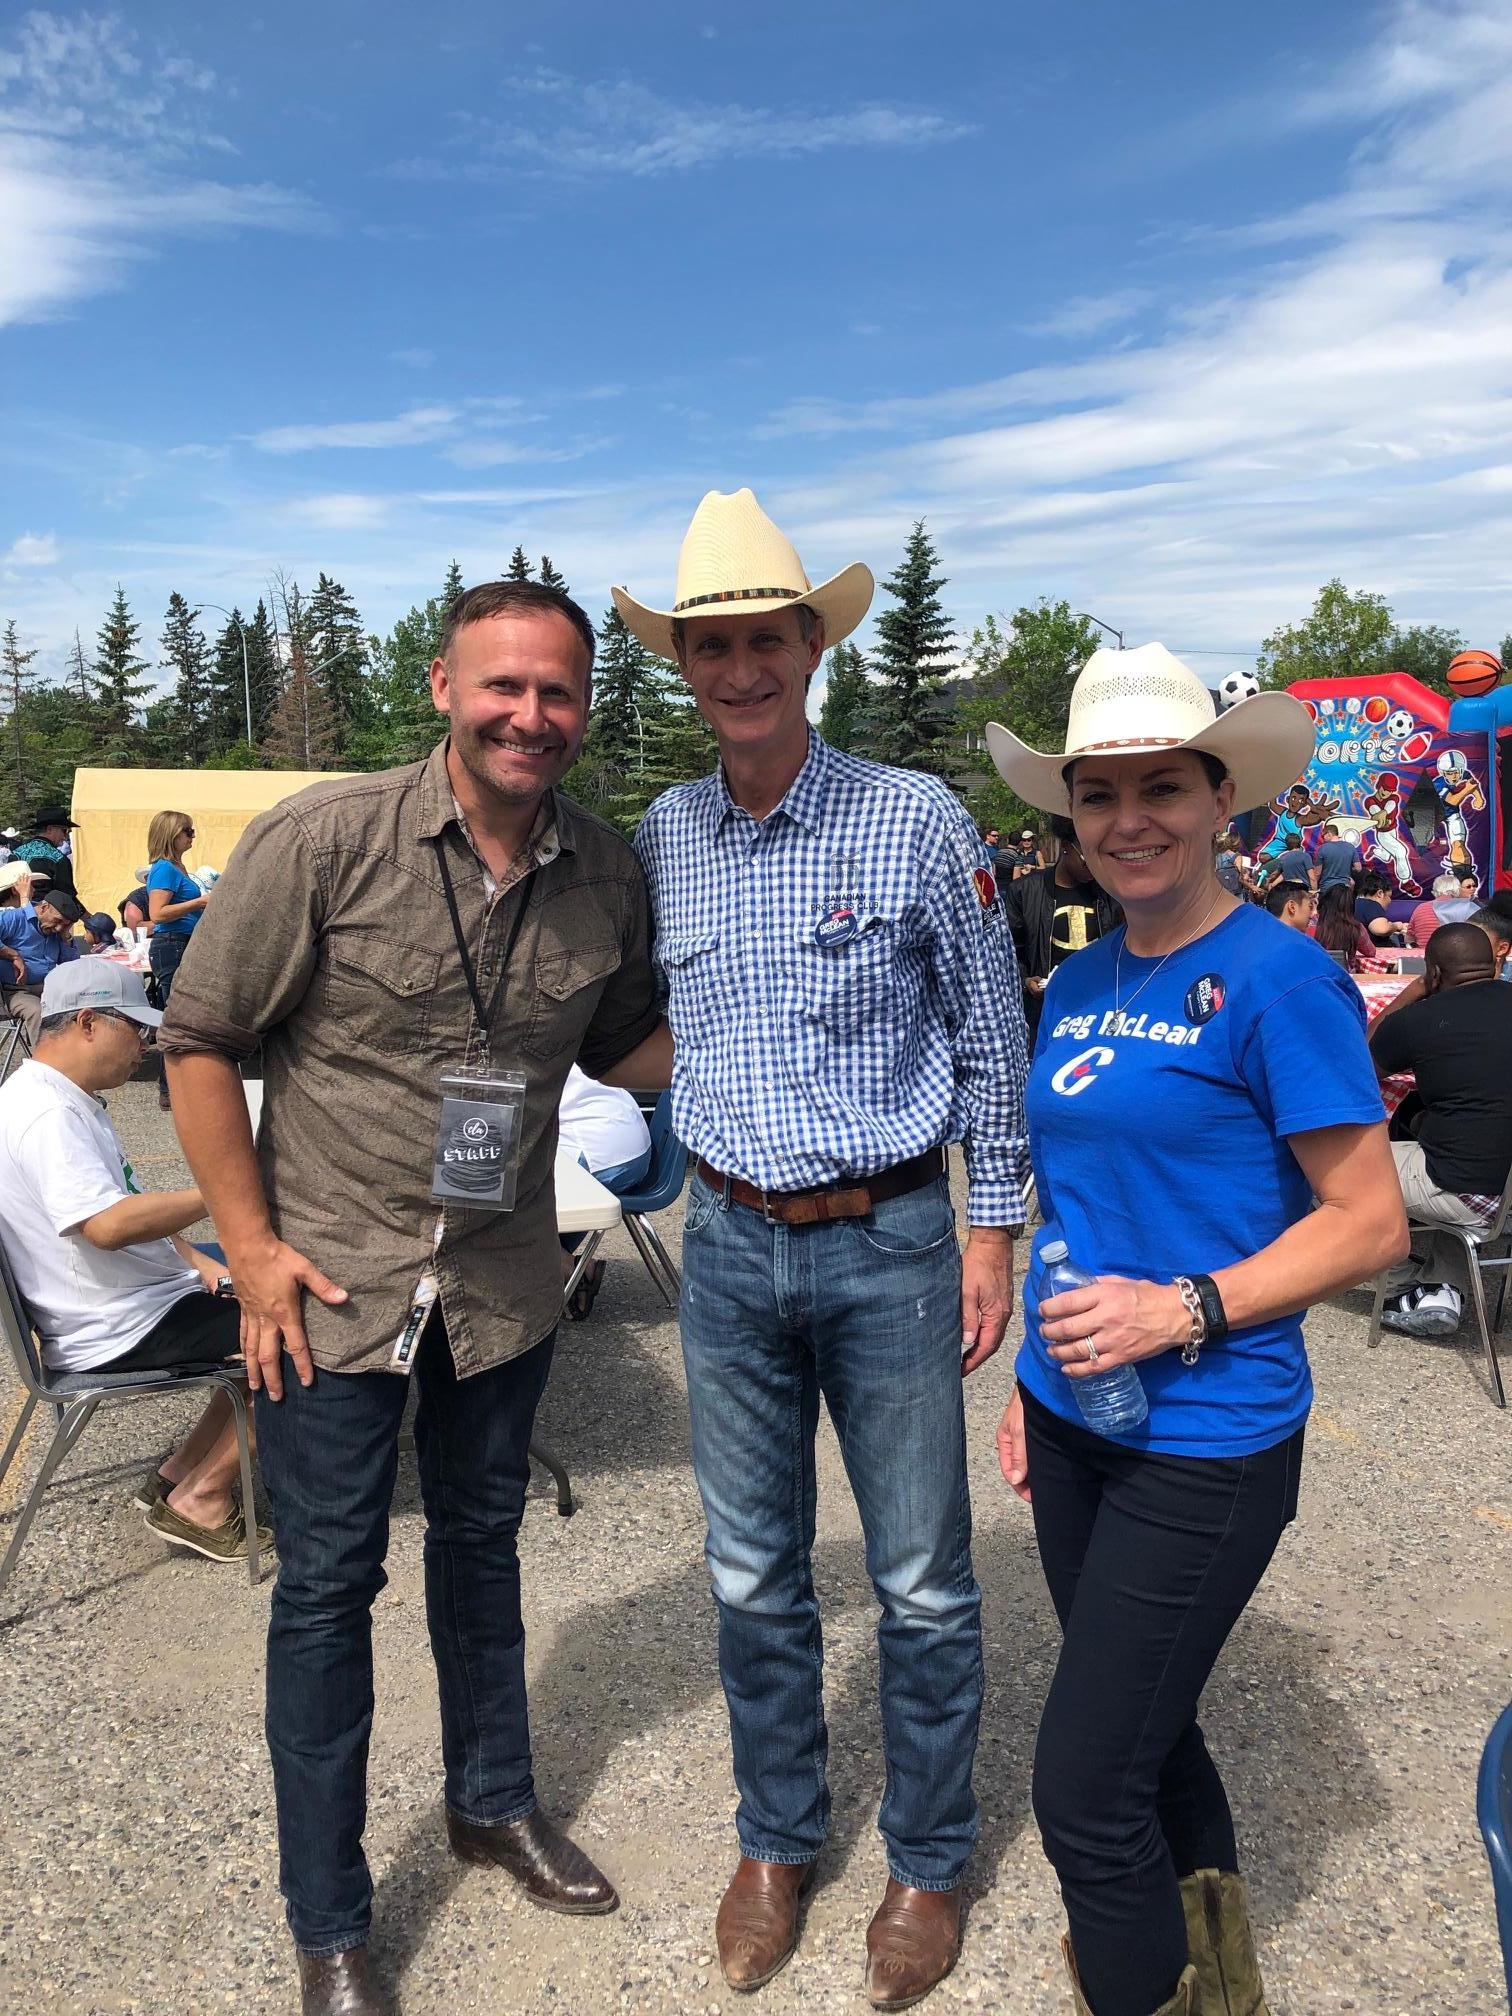 Can't say enough about the volunteers who organize these neighbourhood breakfasts and BBQs during Stampede. It brings communities together, and we applaud their commitment to making the events so terrific. Thank you all.